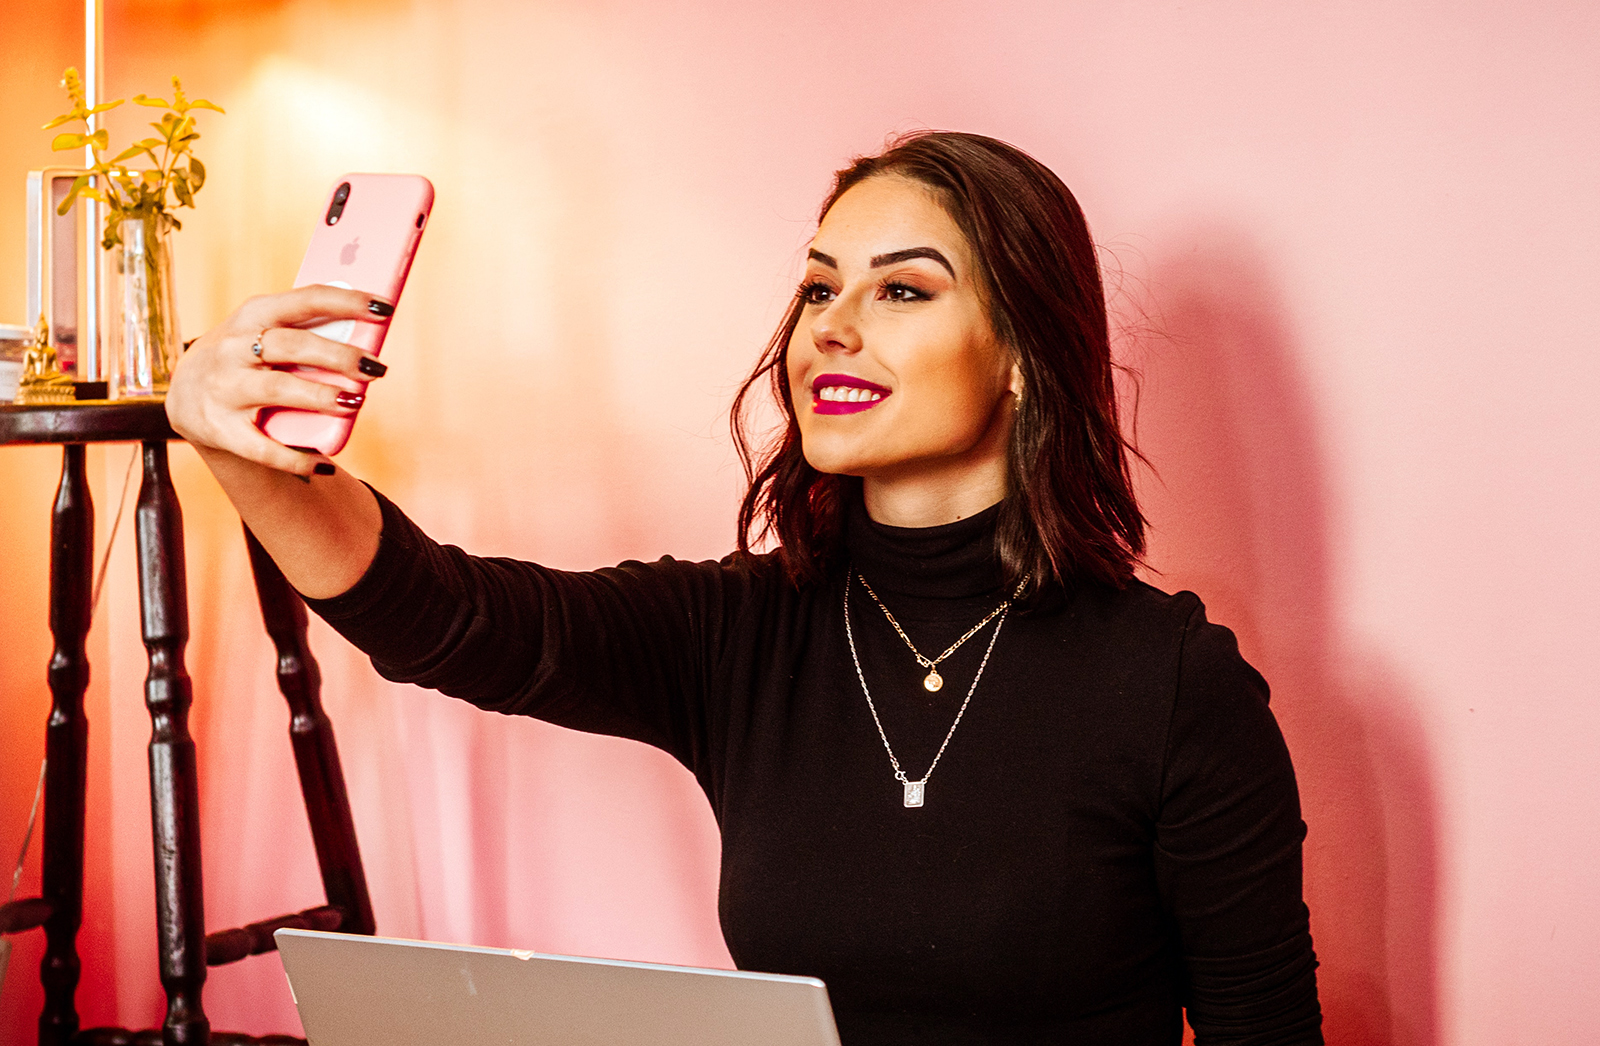 influencers can help your business get noticed